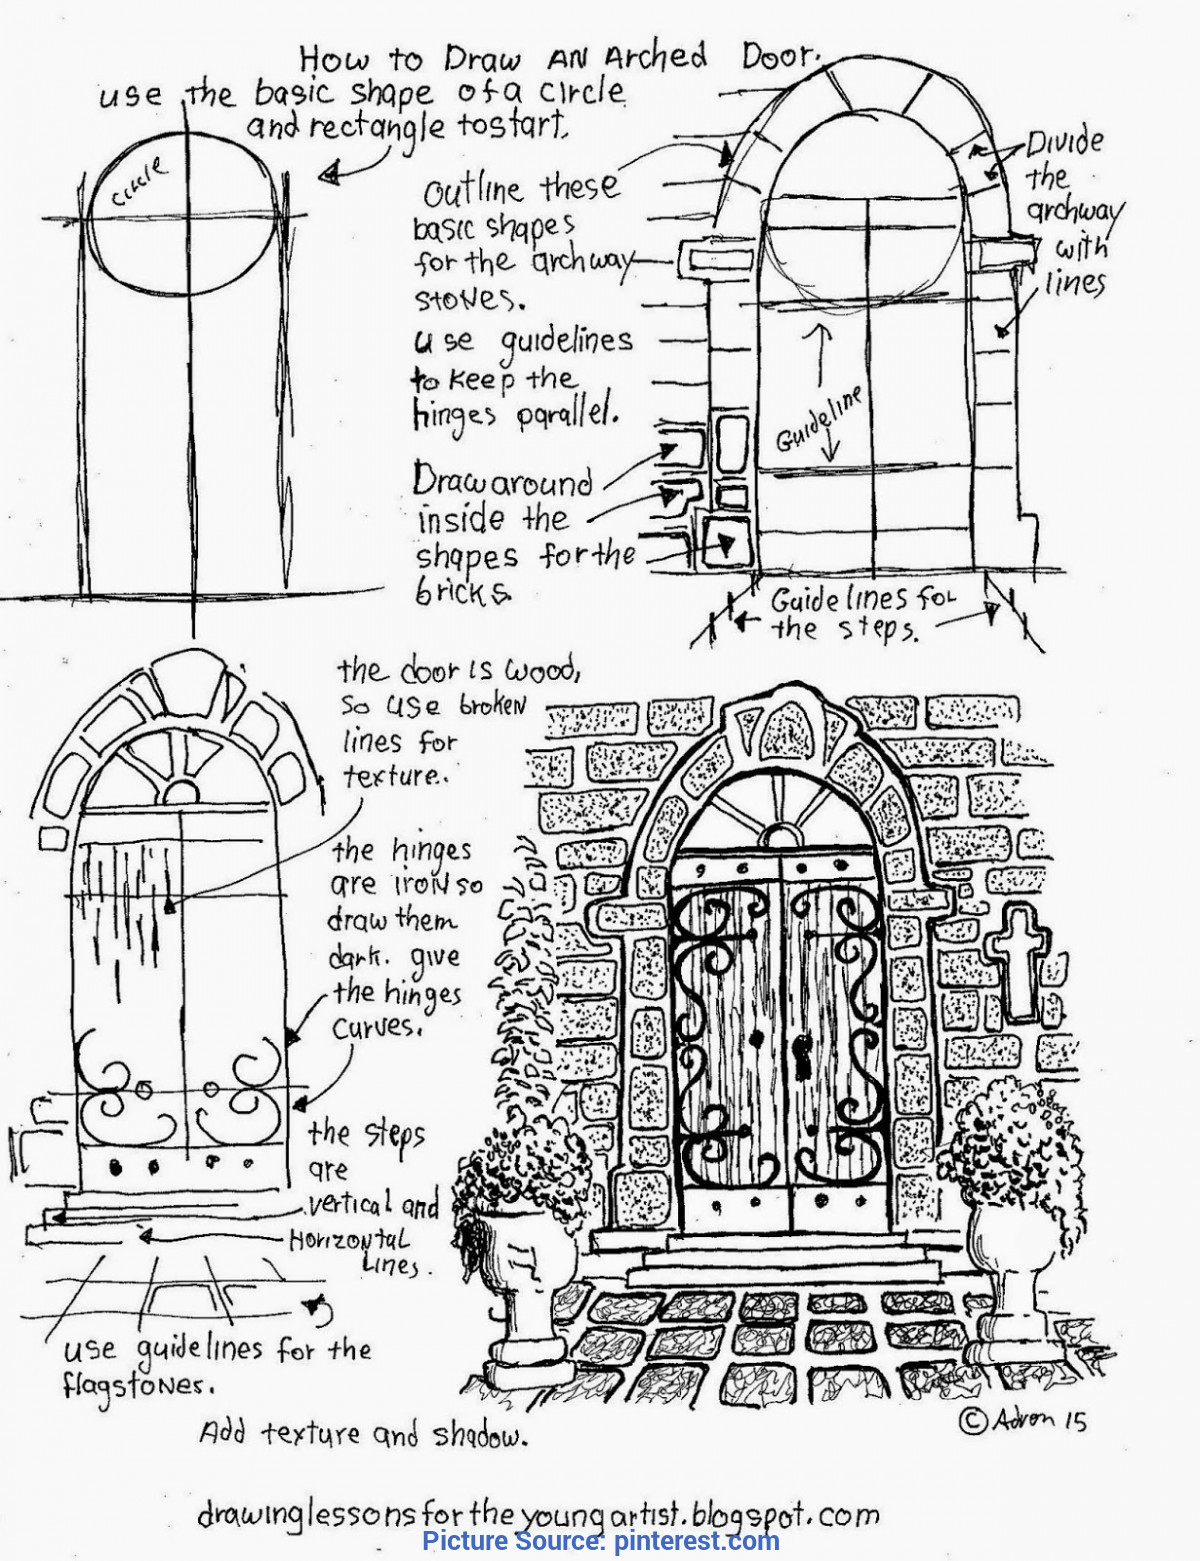 Simple Drawing Lessons For The Young Artist How To Draw An Arched Door, A Free Printable Worksheet (How T